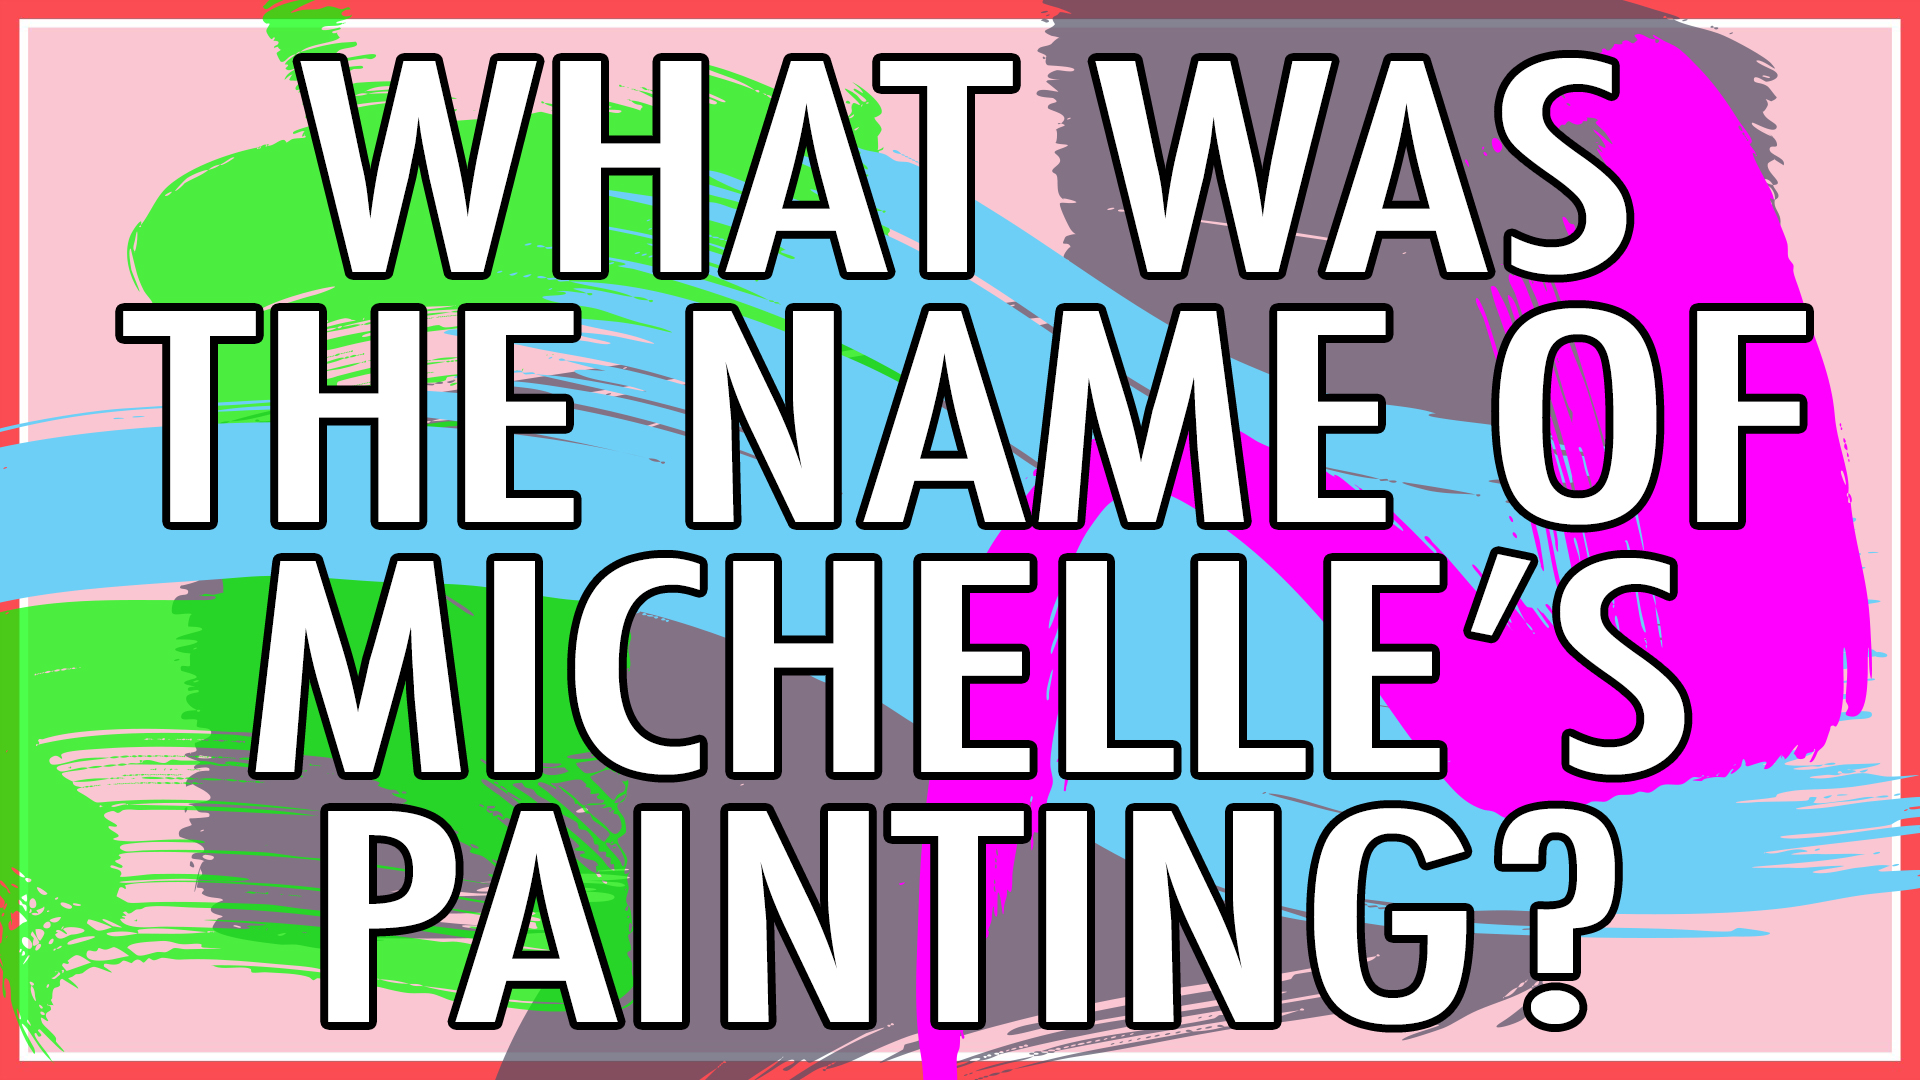 What was the name of Michelle's painting?